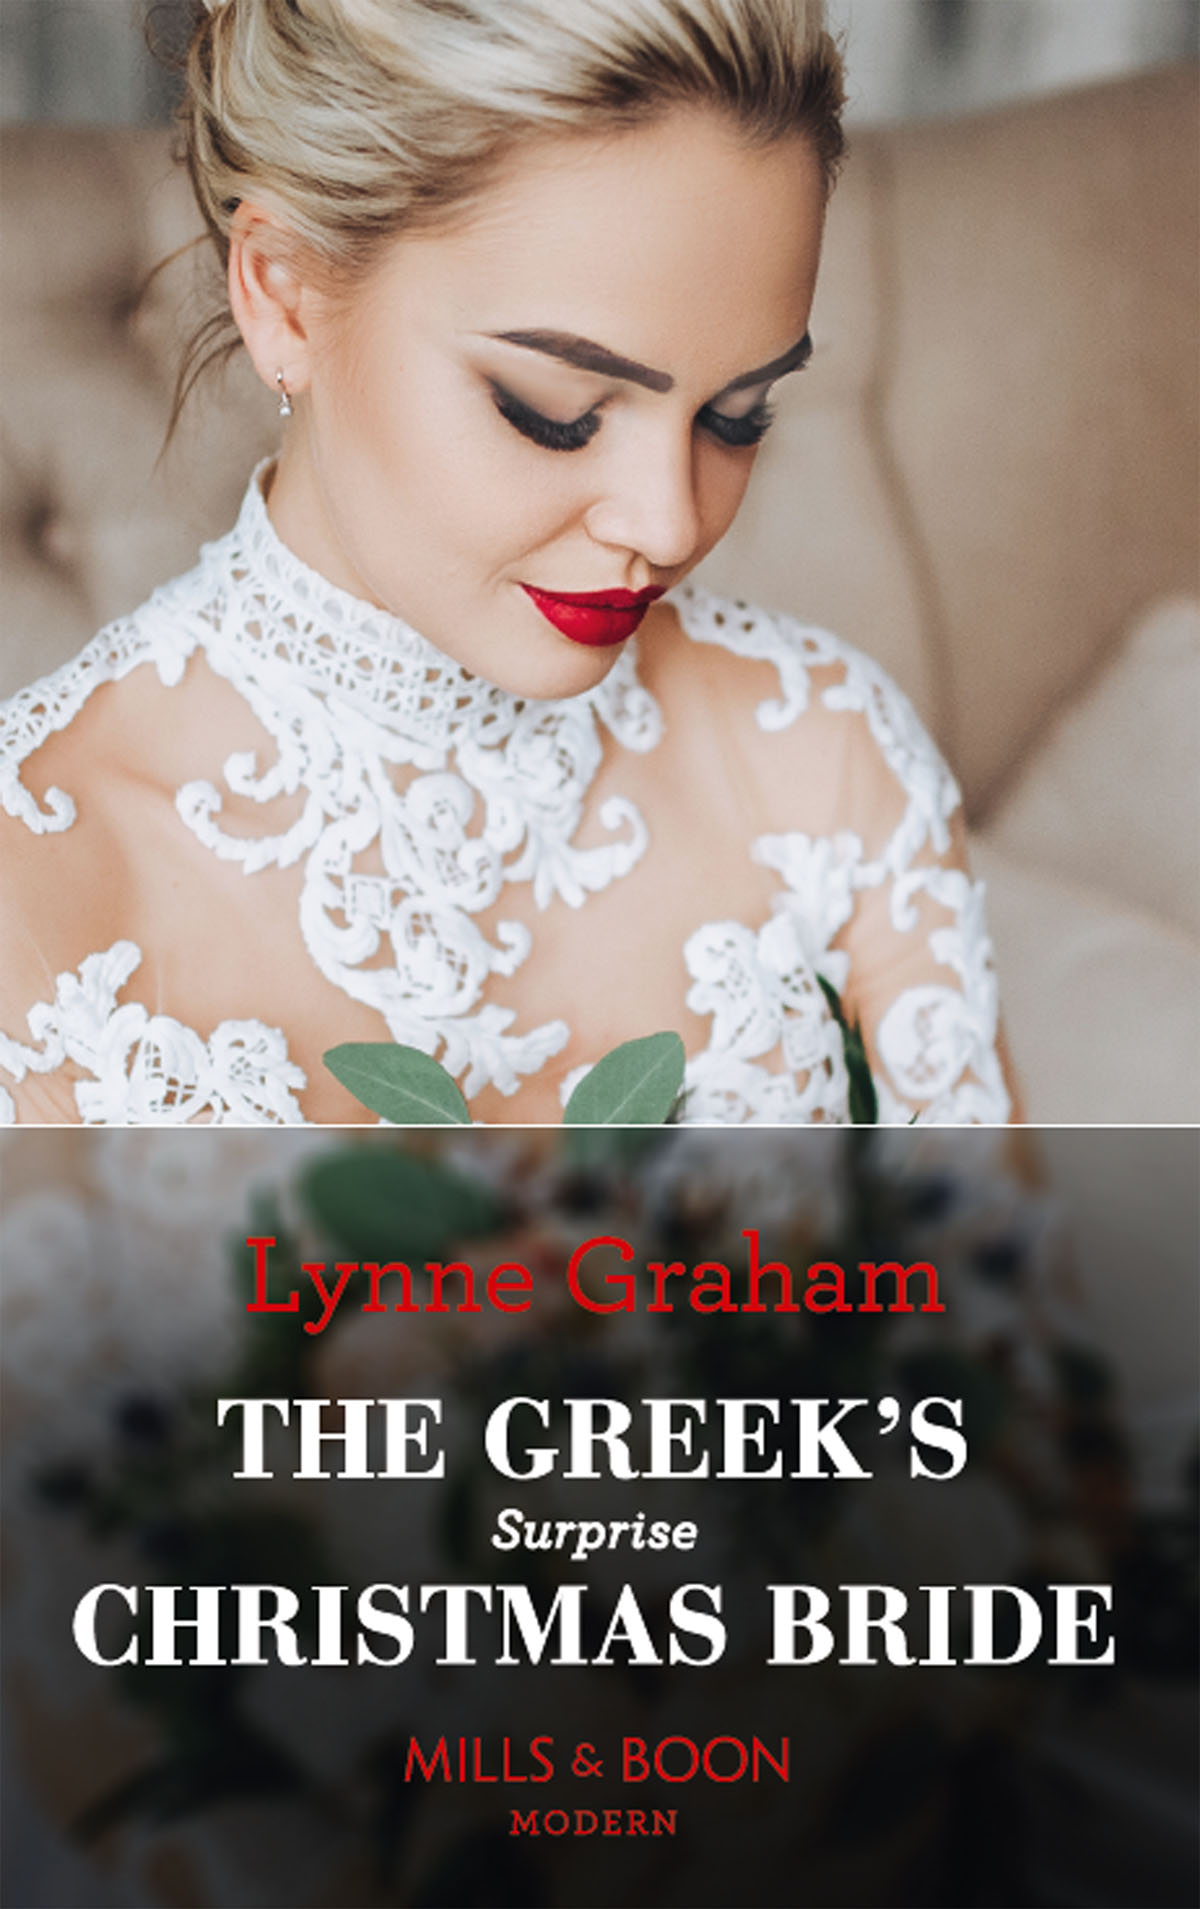 LYNNE GRAHAM The Greek's Surprise Christmas Bride lynne graham playboys the greek tycoon s disobedient bride the ruthless magnate s virgin mistress the spanish billionaire s pregnant wife